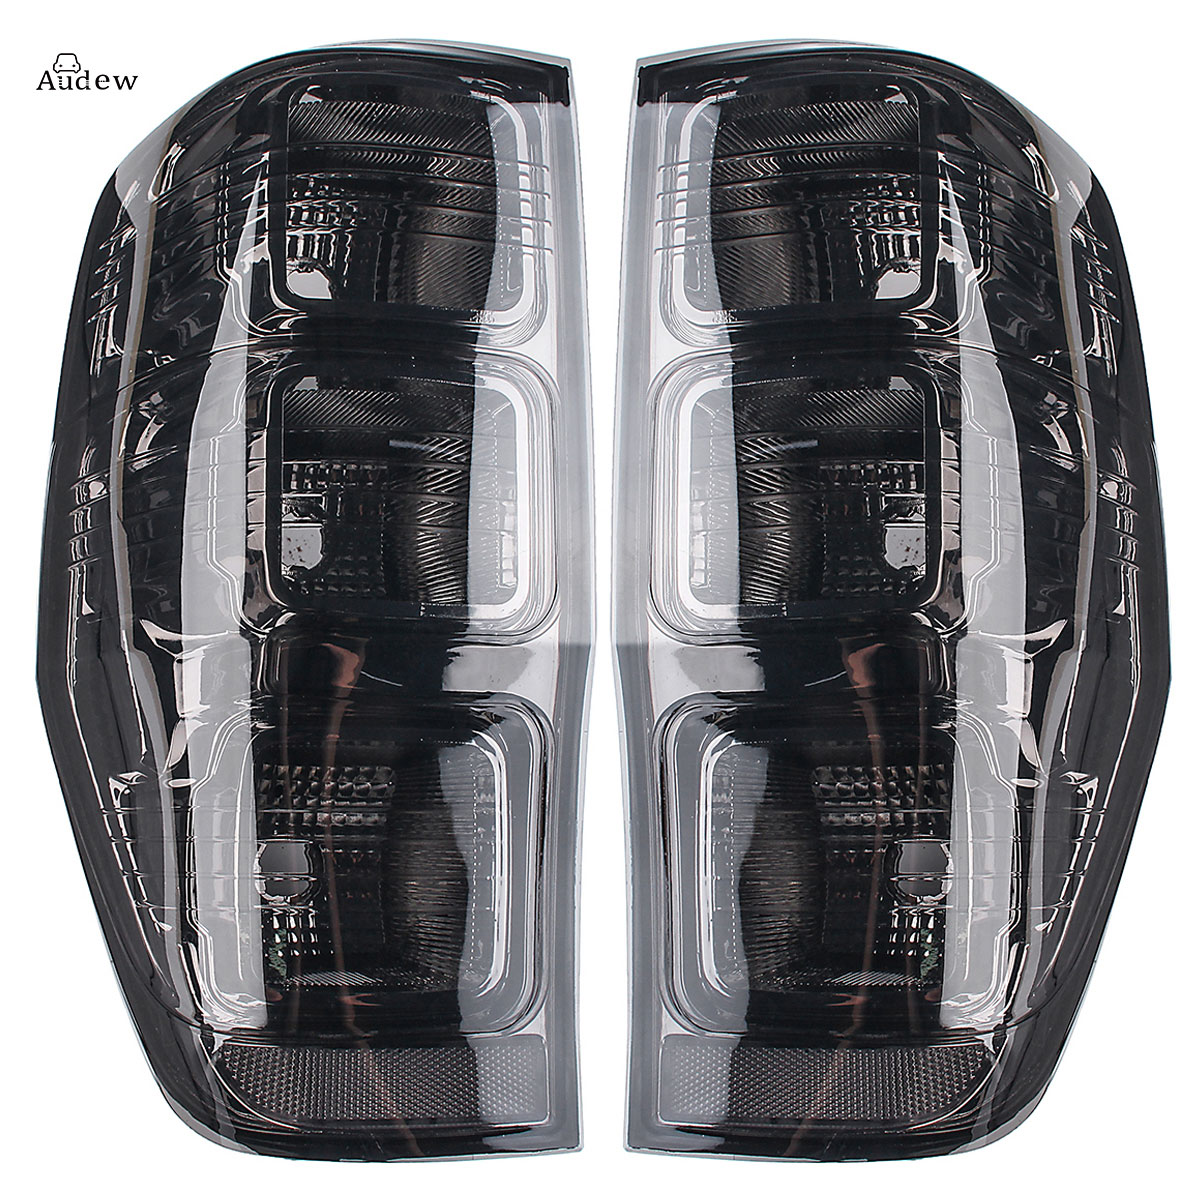 for Ford Ranger PX T6 MK1 MK2 WildTrak XLT XL XLS for High Quality Rear Left/Right Tail Smoked Rear Tail Lights Lamp Fog Light high quality chrome tail light cover for skoda octavia mk2 04 08 free shipping